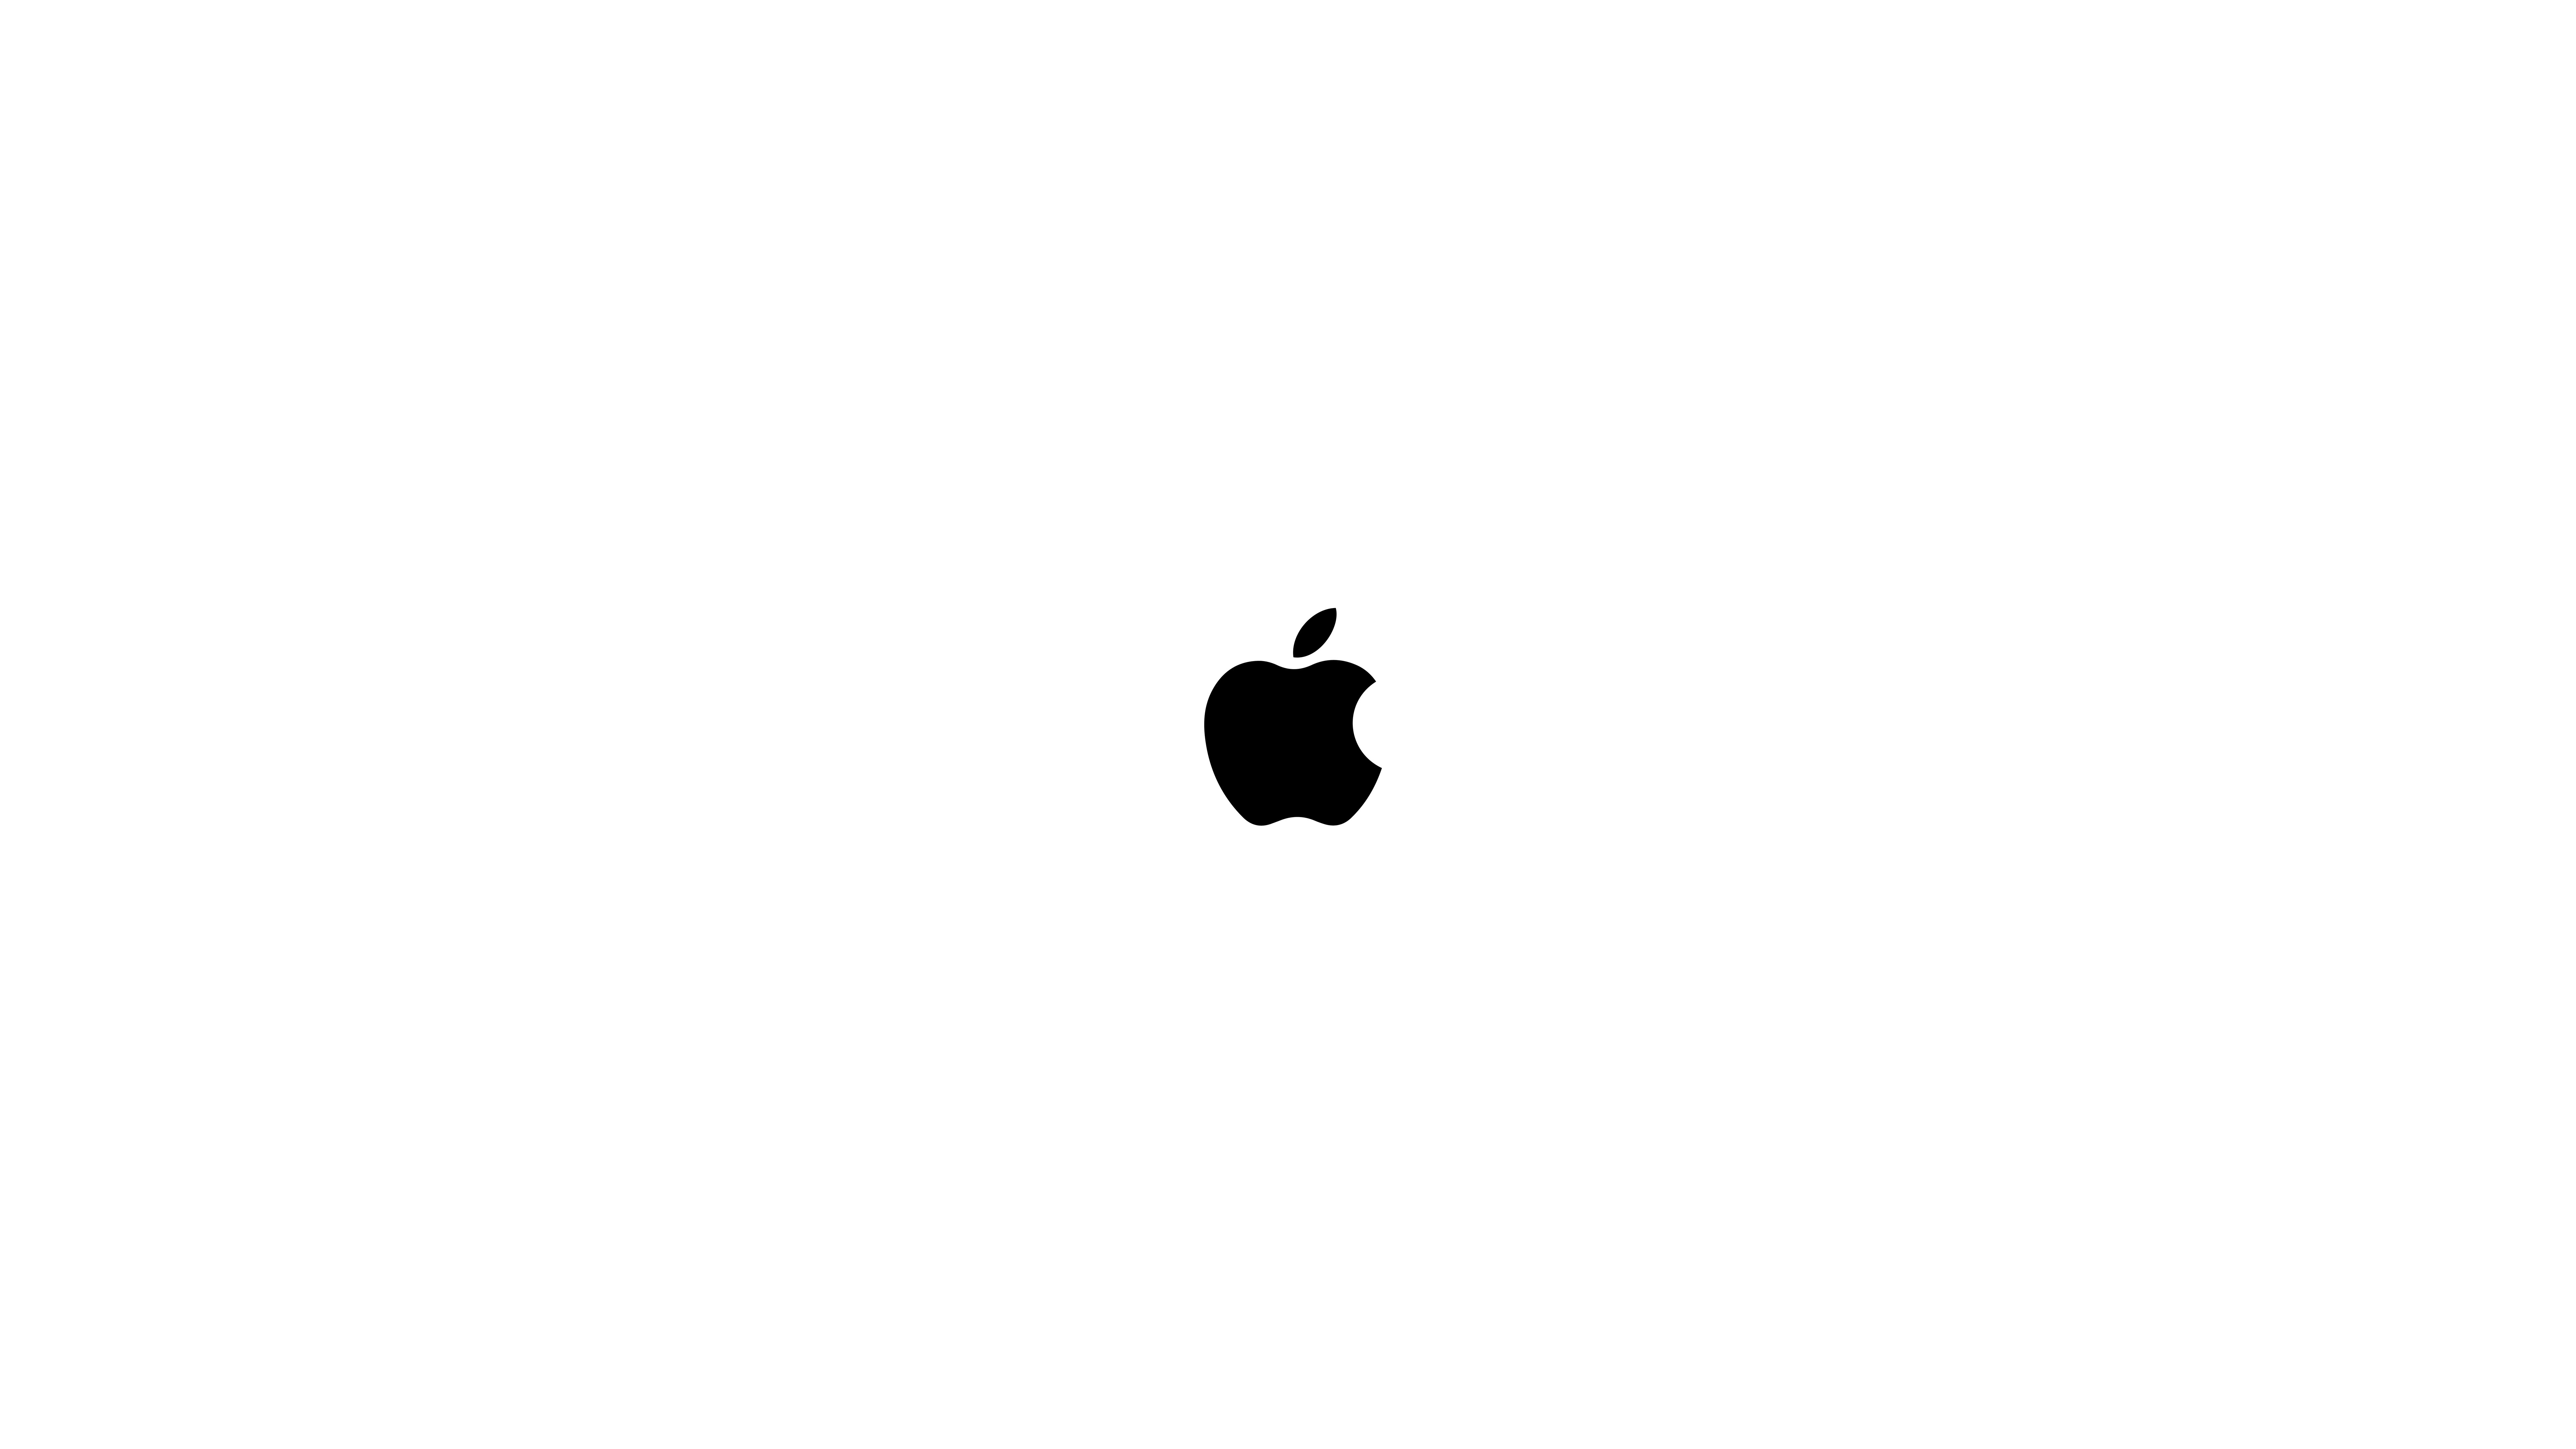 black apple logo uhd 8k wallpaper pixelz